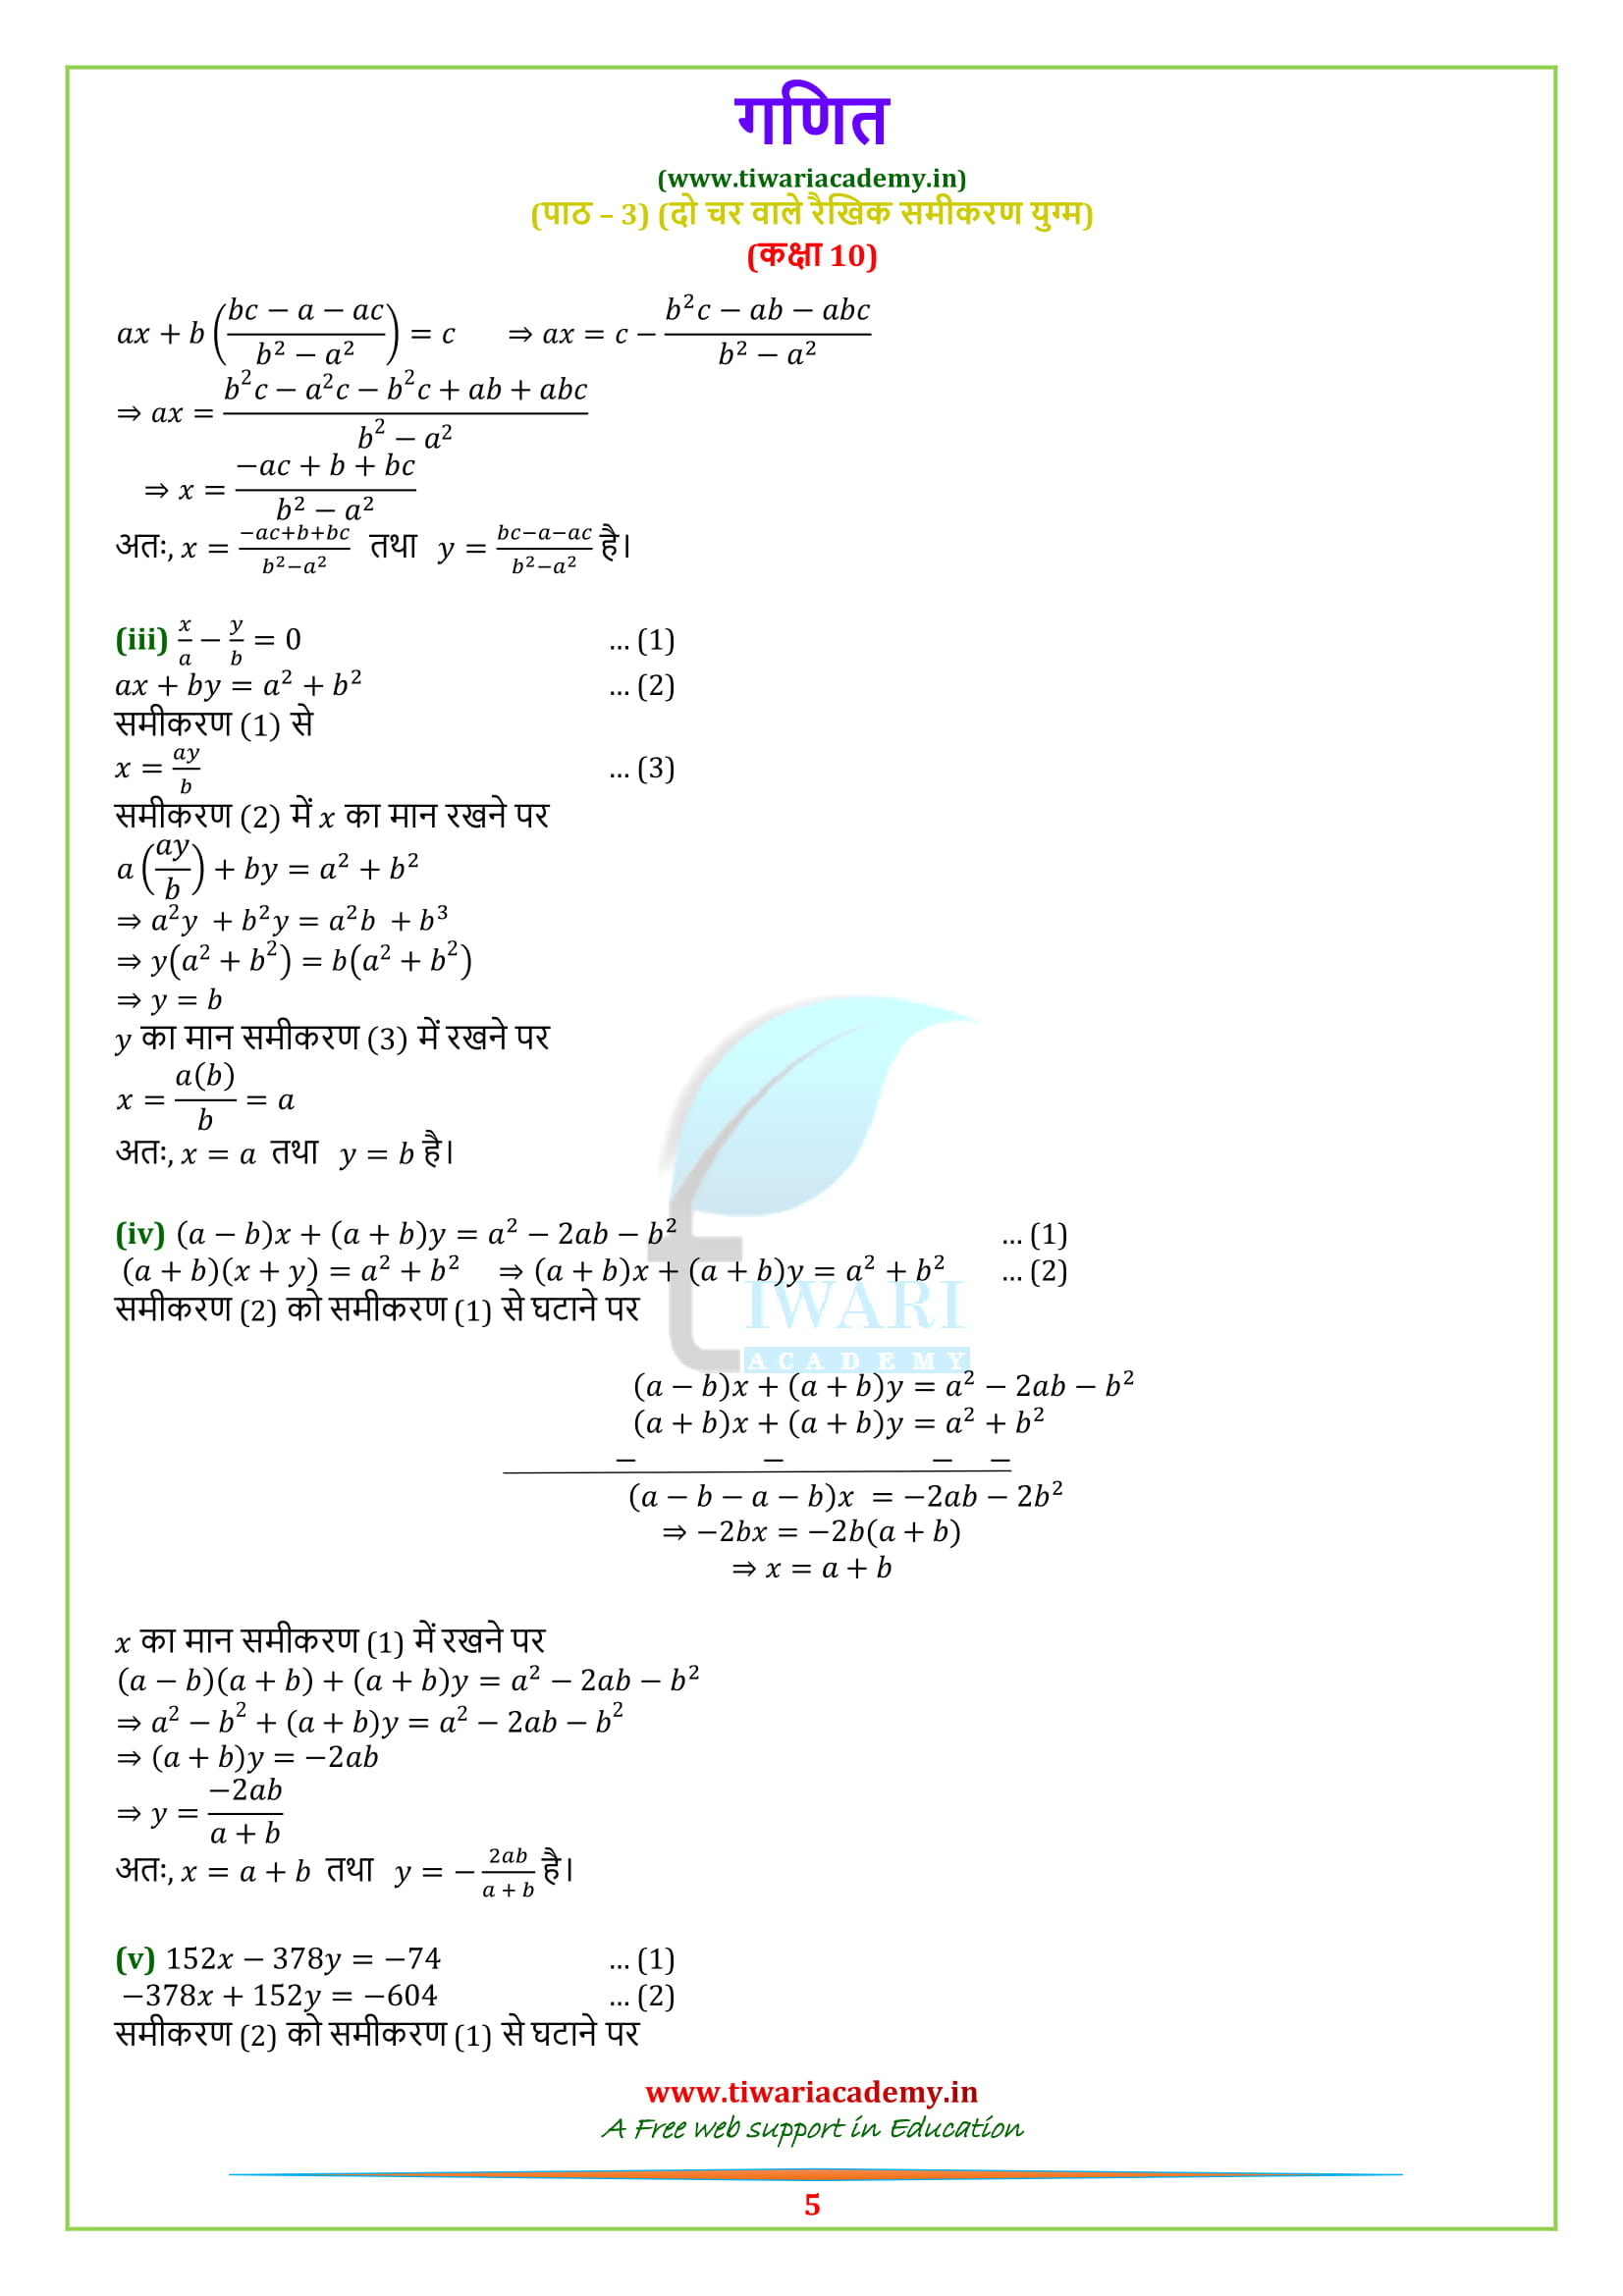 NCERT Solutions for class 10 maths exercise 3.7 updated for up board 2018-19 exam